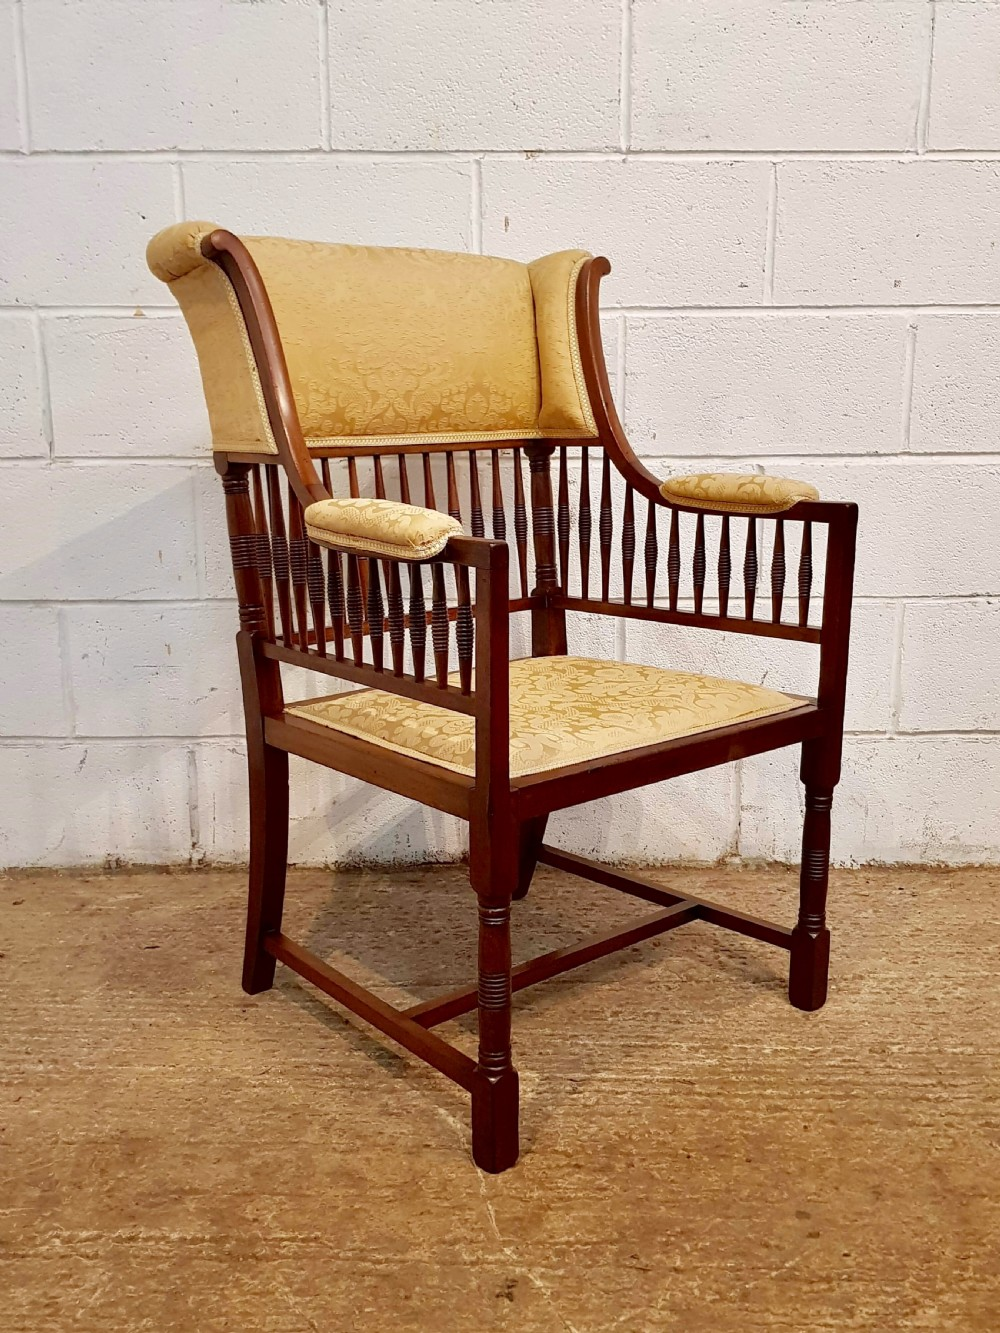 antique arts and crafts mahogany framed salon chair c1890